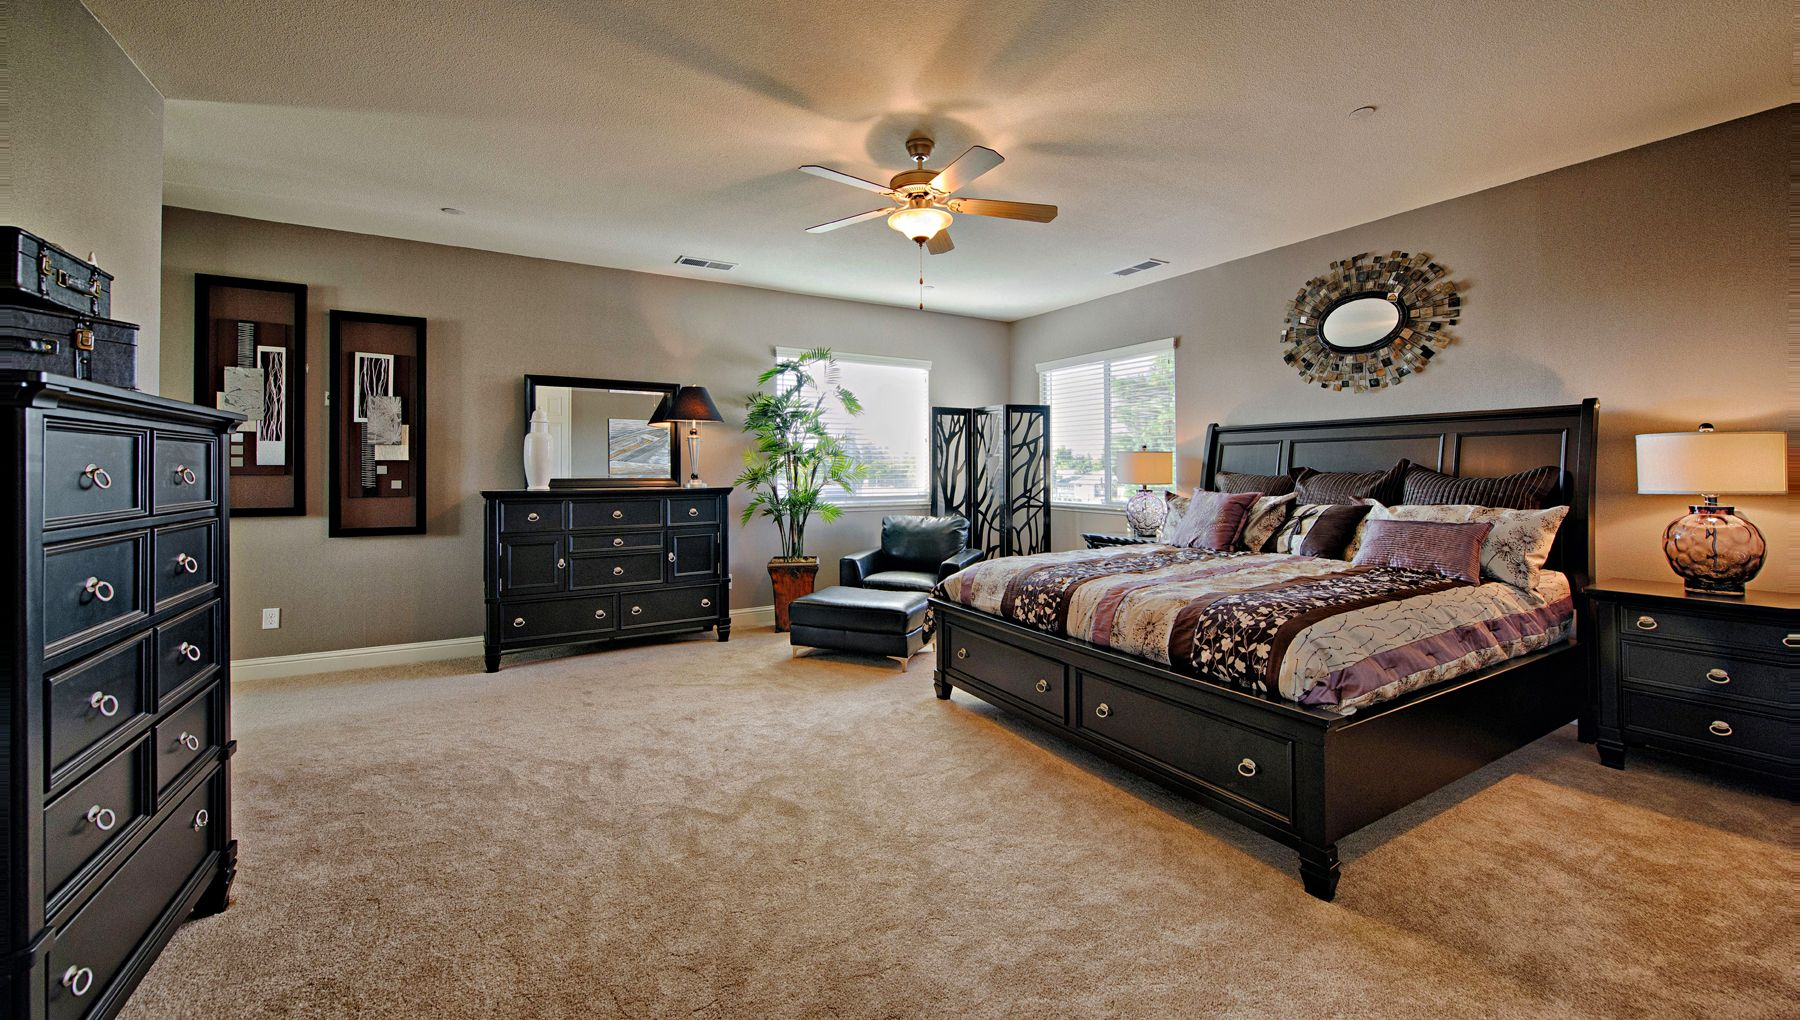 Dream master bedrooms dream master bedroom cool for Make your dream bedroom